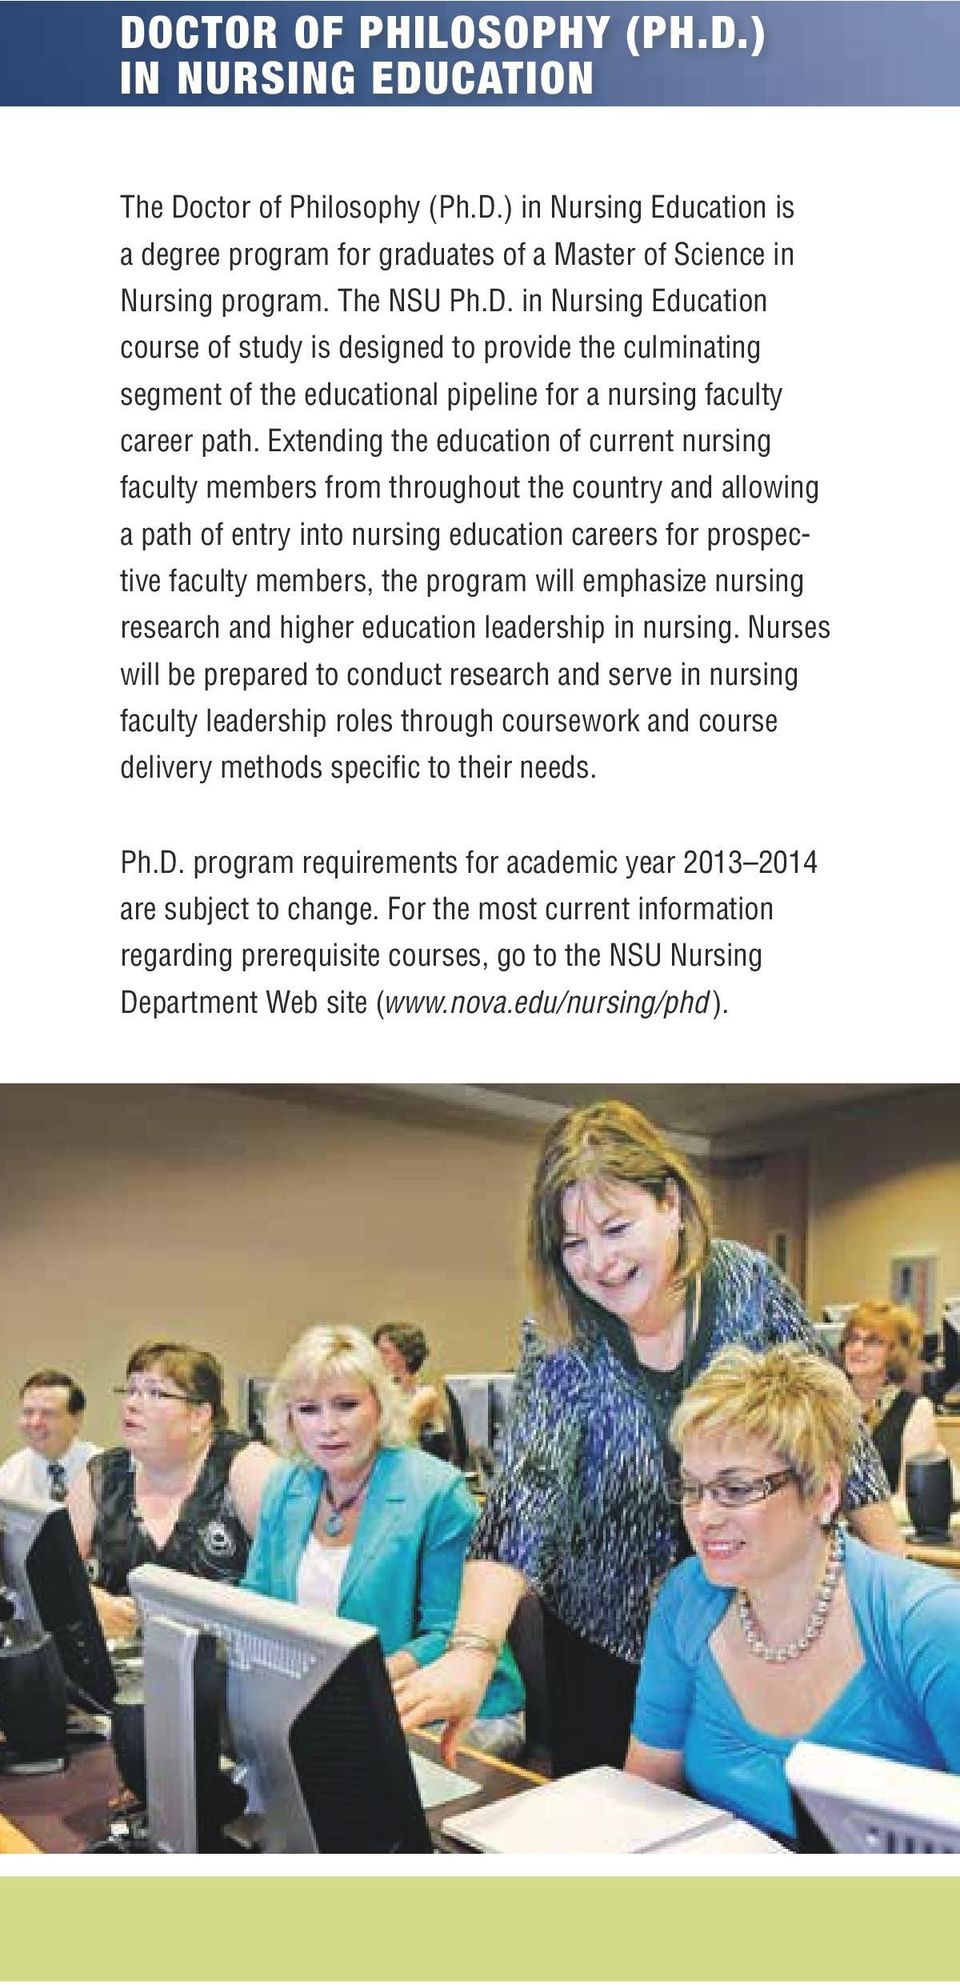 emphasize nursing research and higher education leadership in nursing.